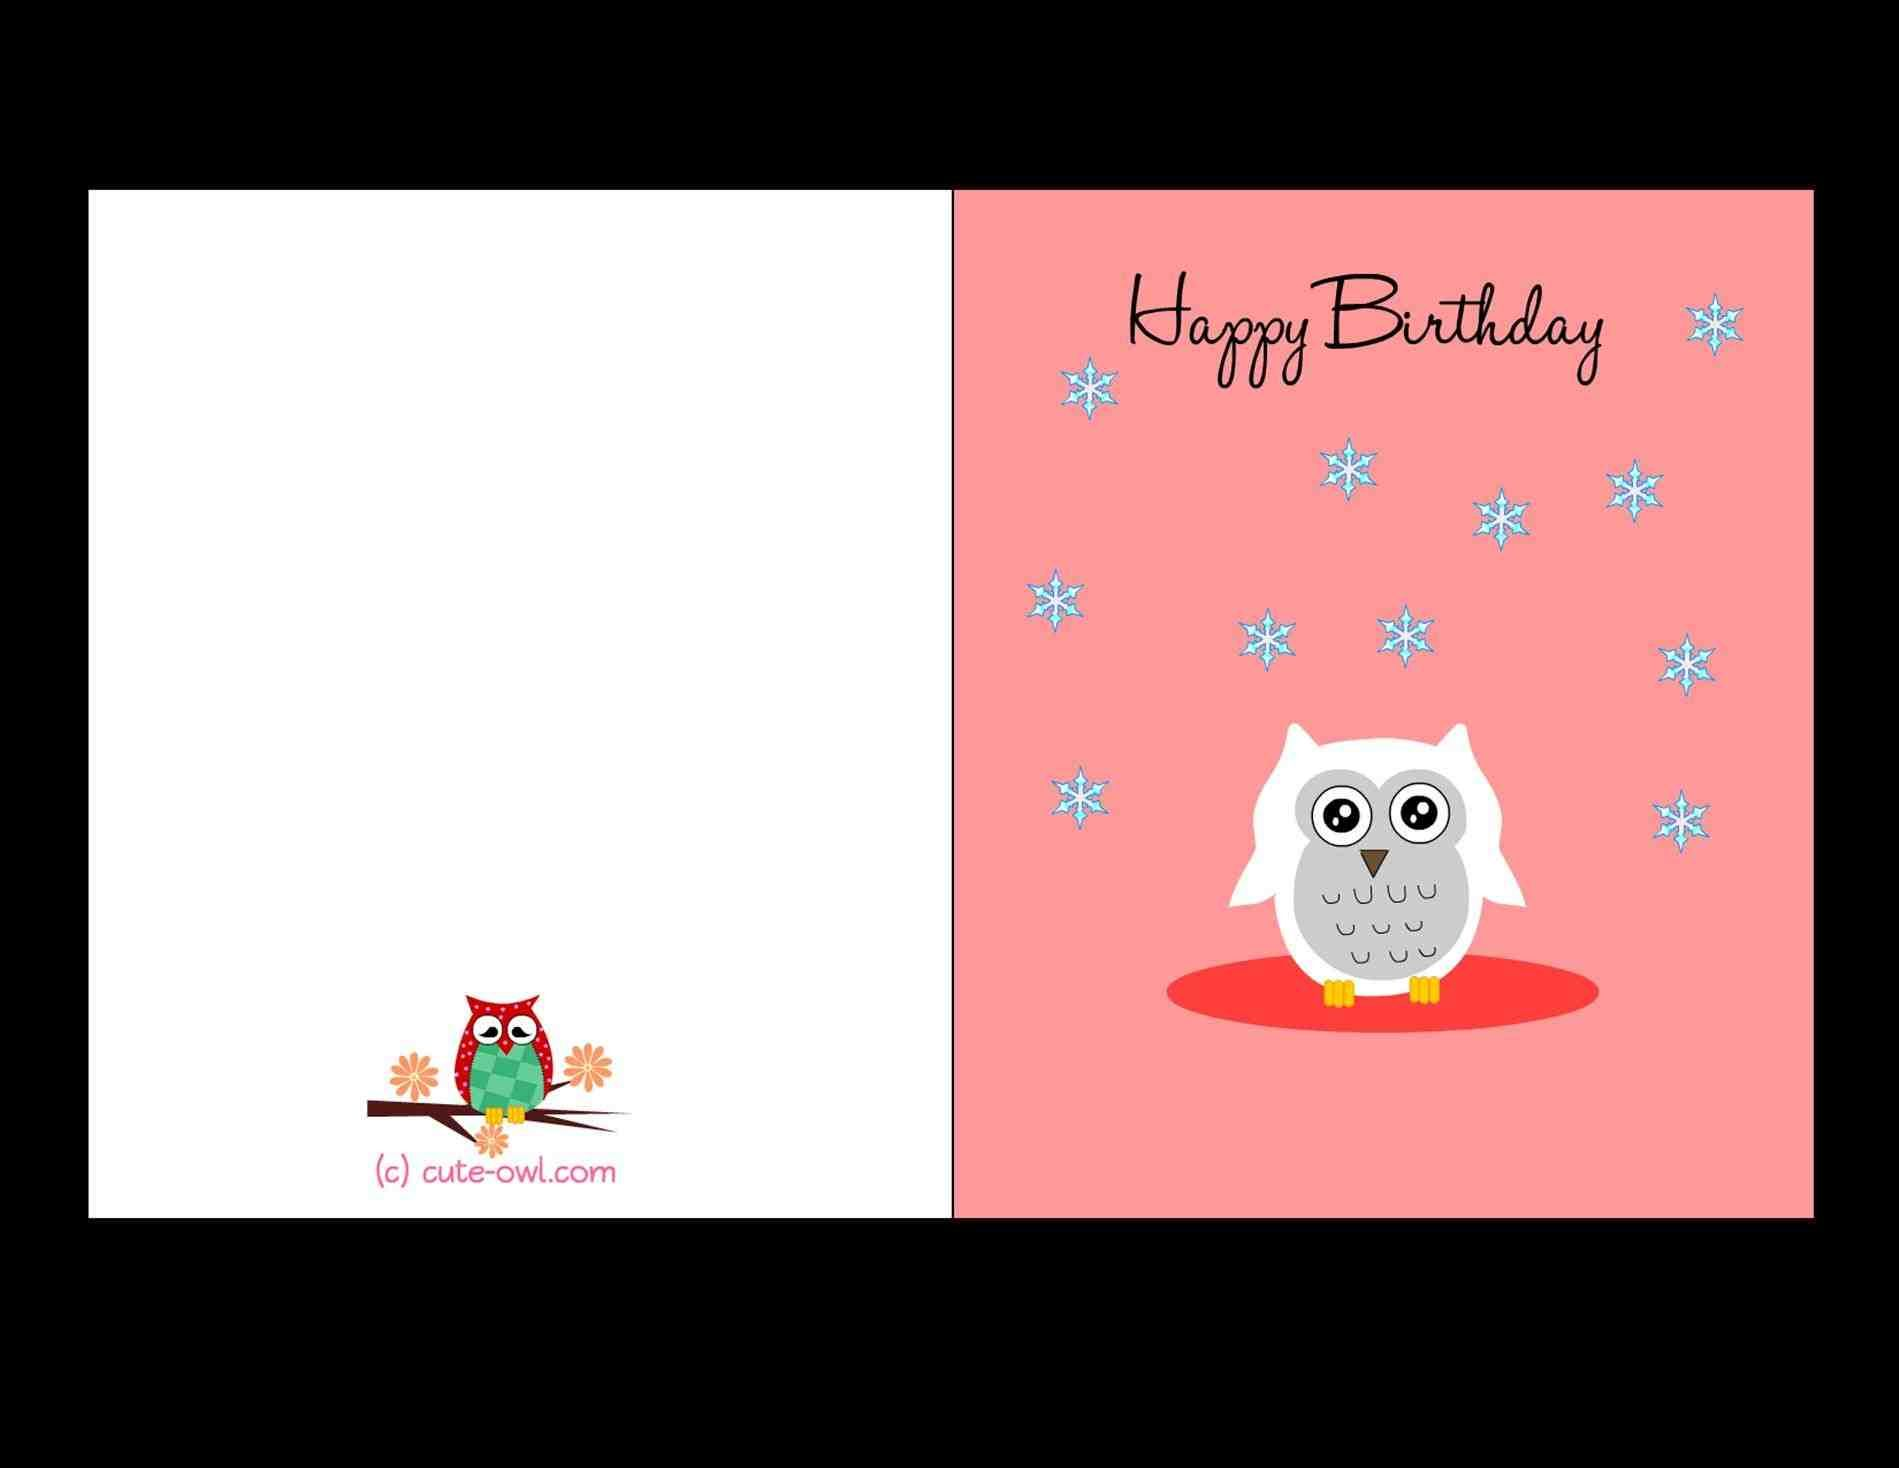 Number of online ecard greeting card place offer animated number of online ecard greeting card place offer animated cantatory and musical birthday cards for men including doozy cards blue mountain full size of kristyandbryce Image collections